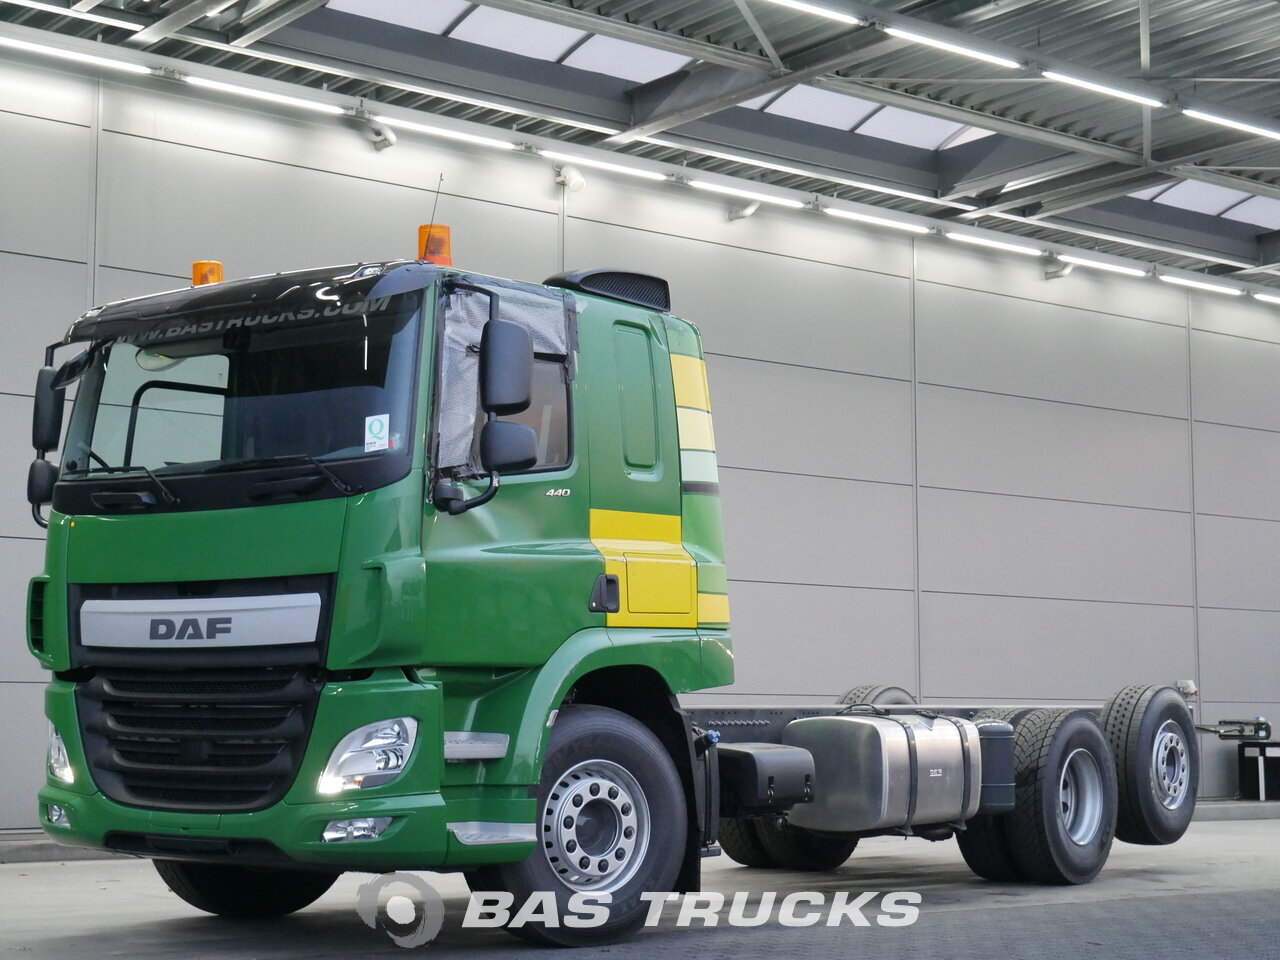 For sale at BAS Parts: DAF CF 440 Unfall Fahrbereit 6X2 New